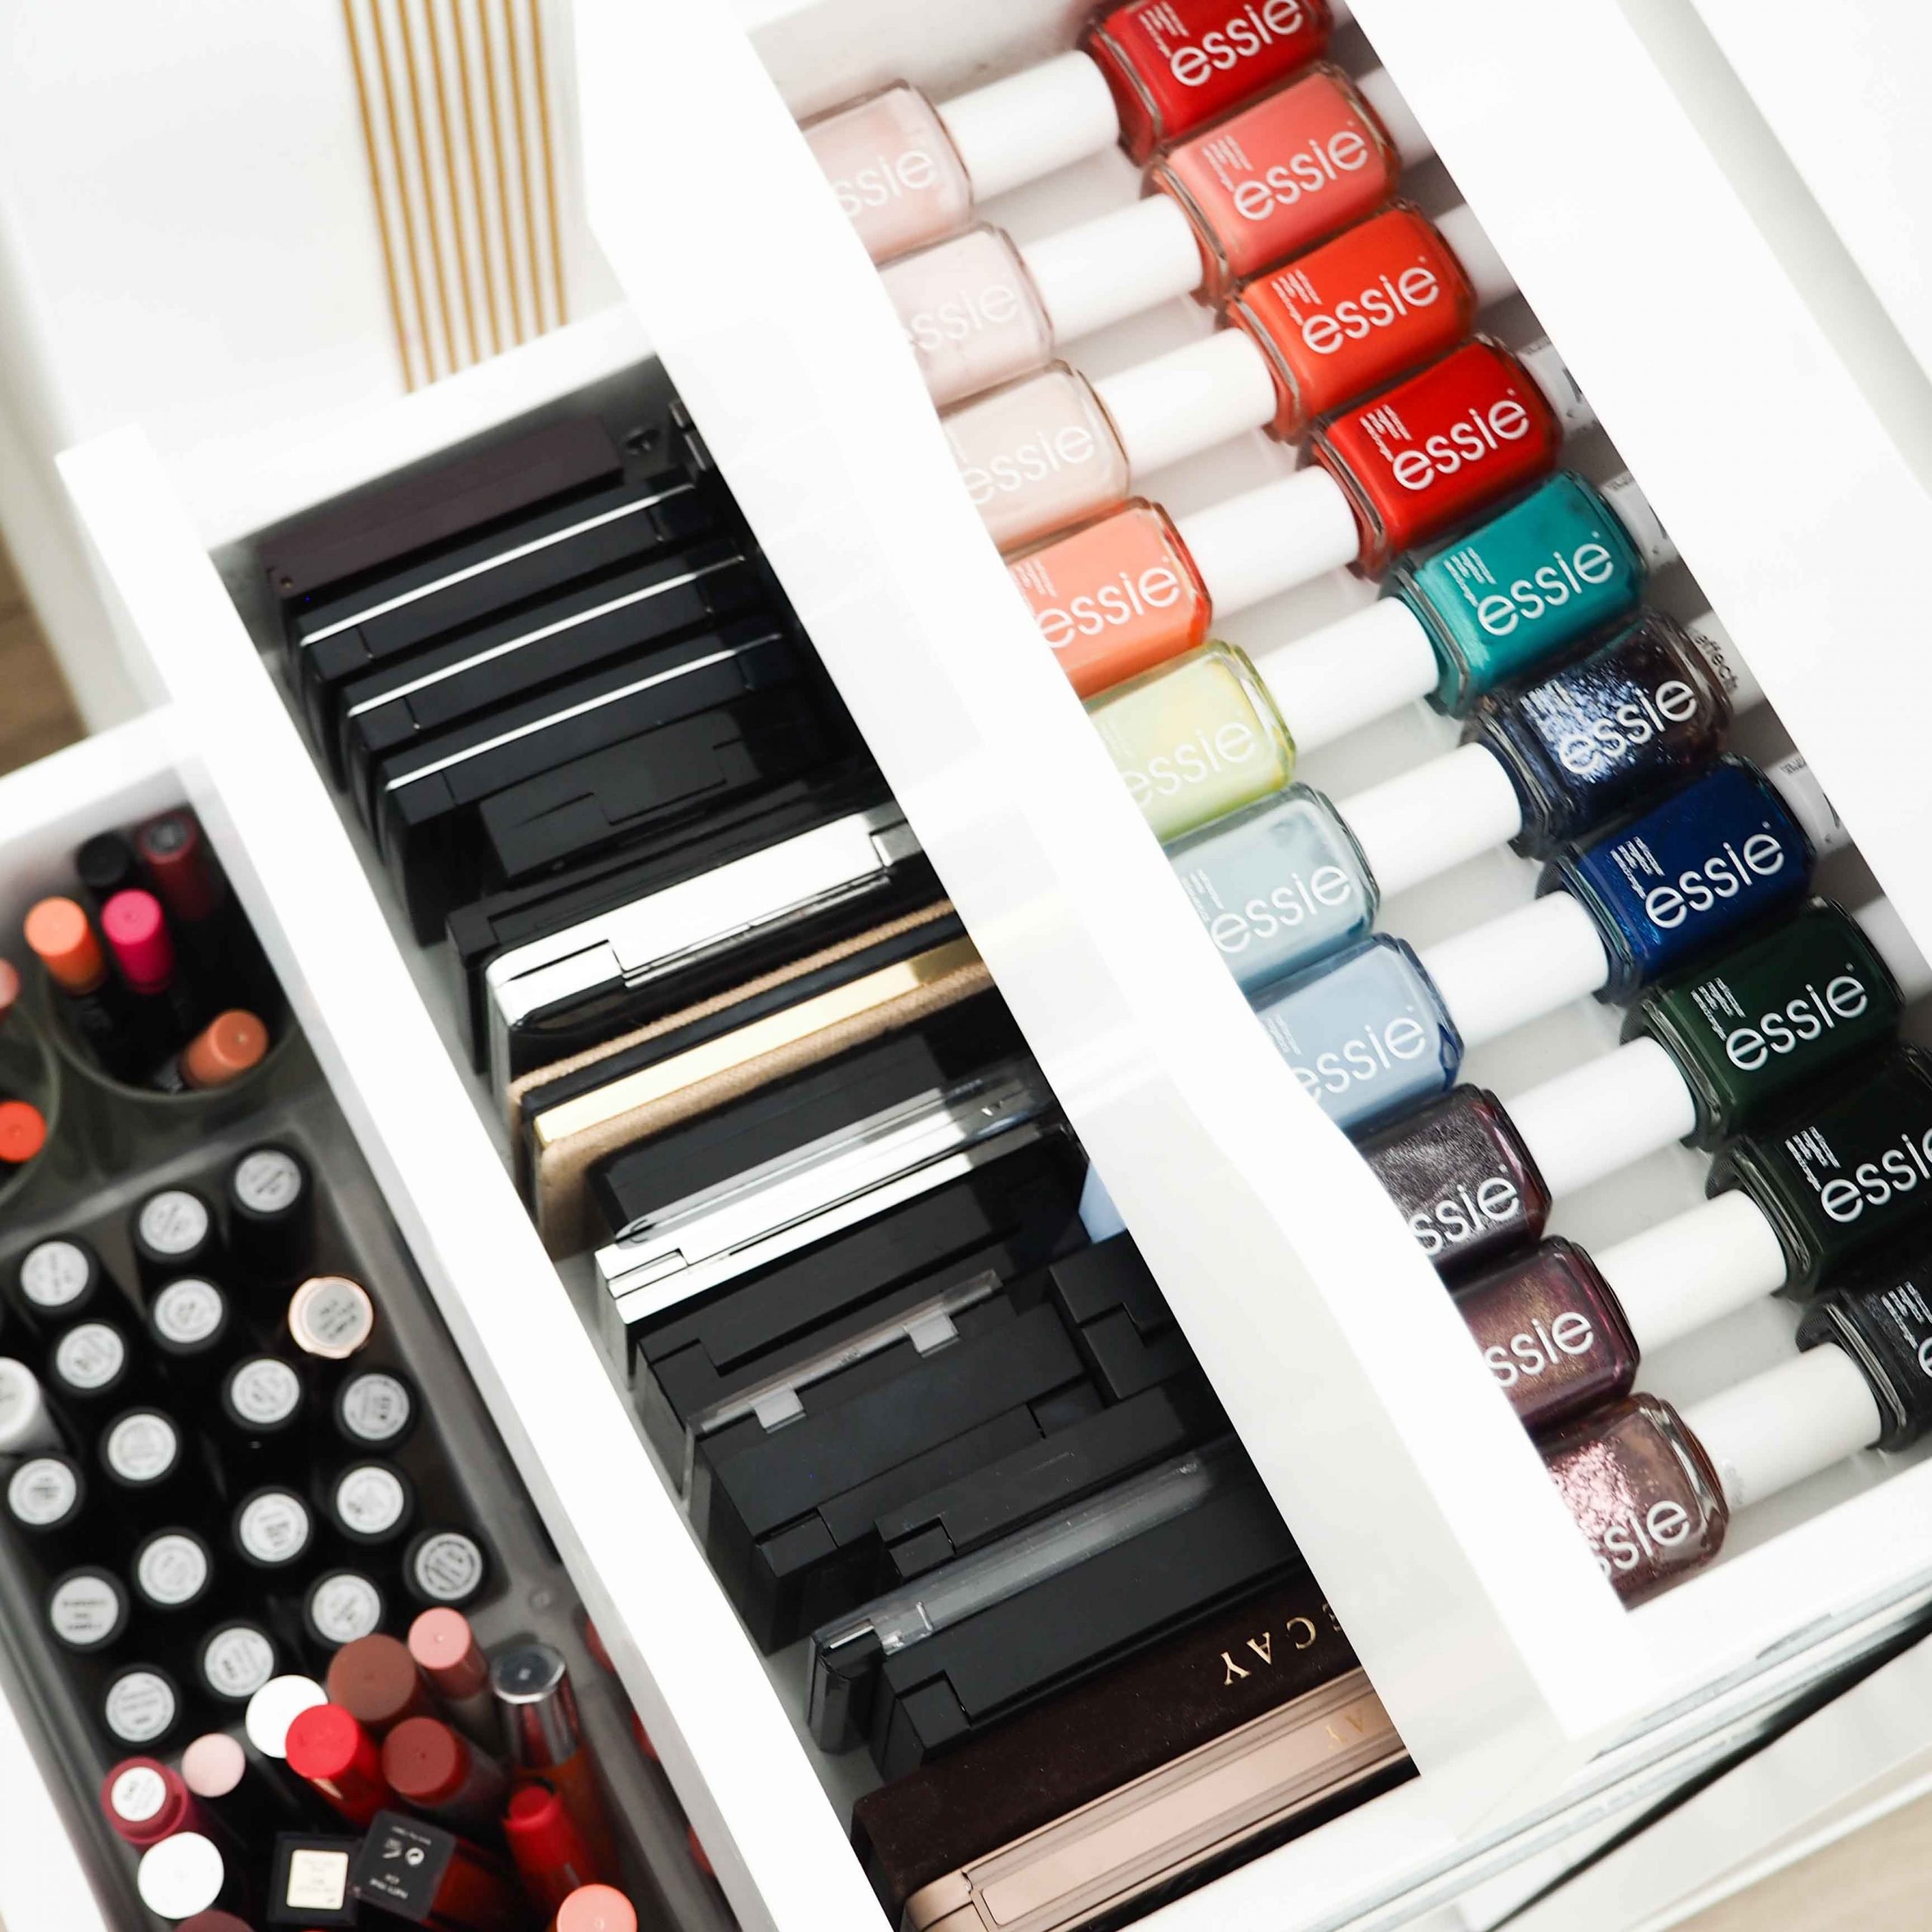 Organized makeup collection in Ikea cabinet